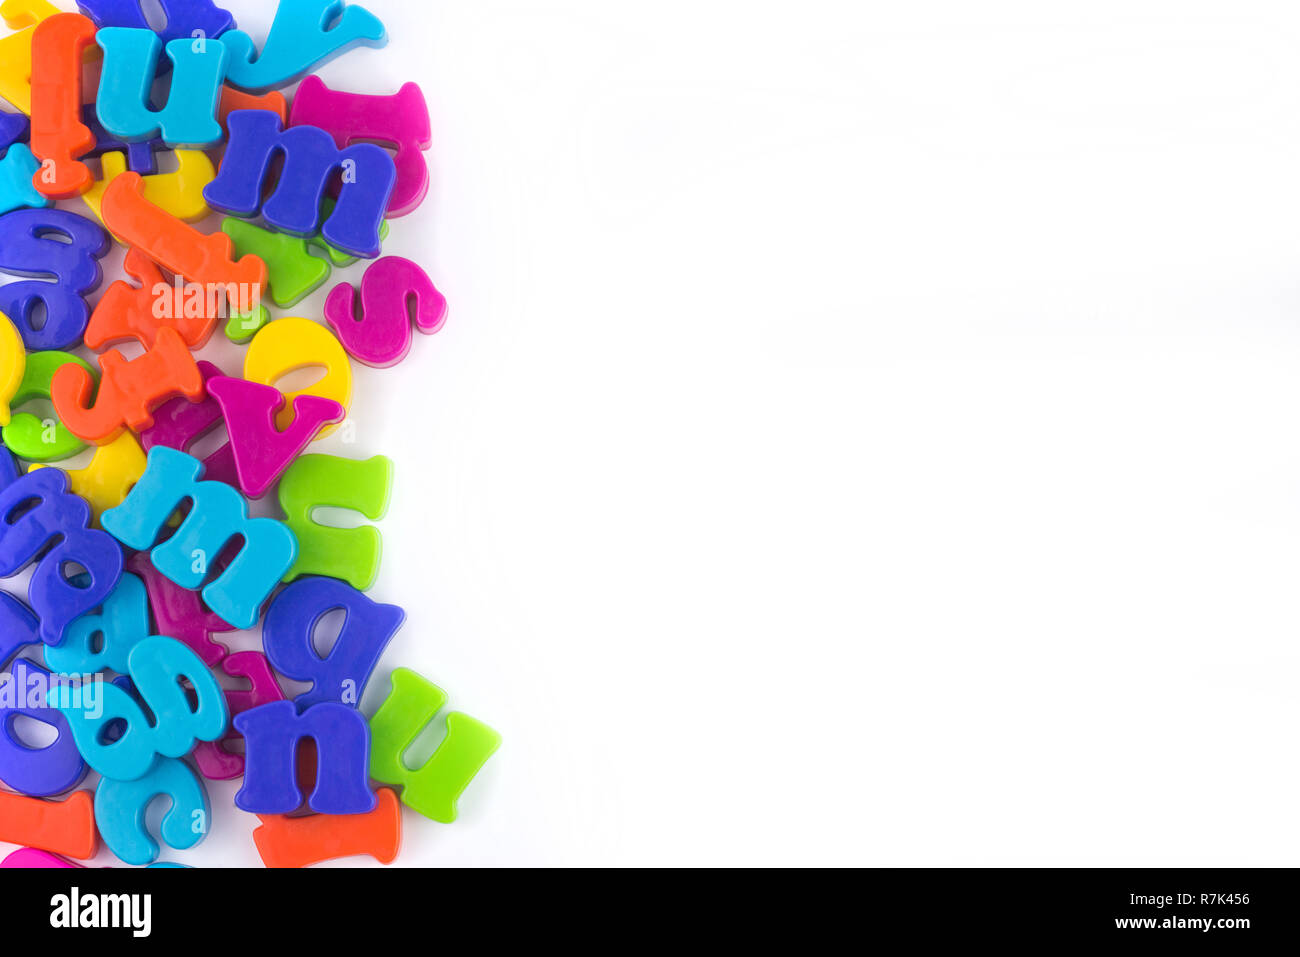 Colourful plastic letters isolated on white.Concept of education, online and home education.Place for a text. - Stock Image